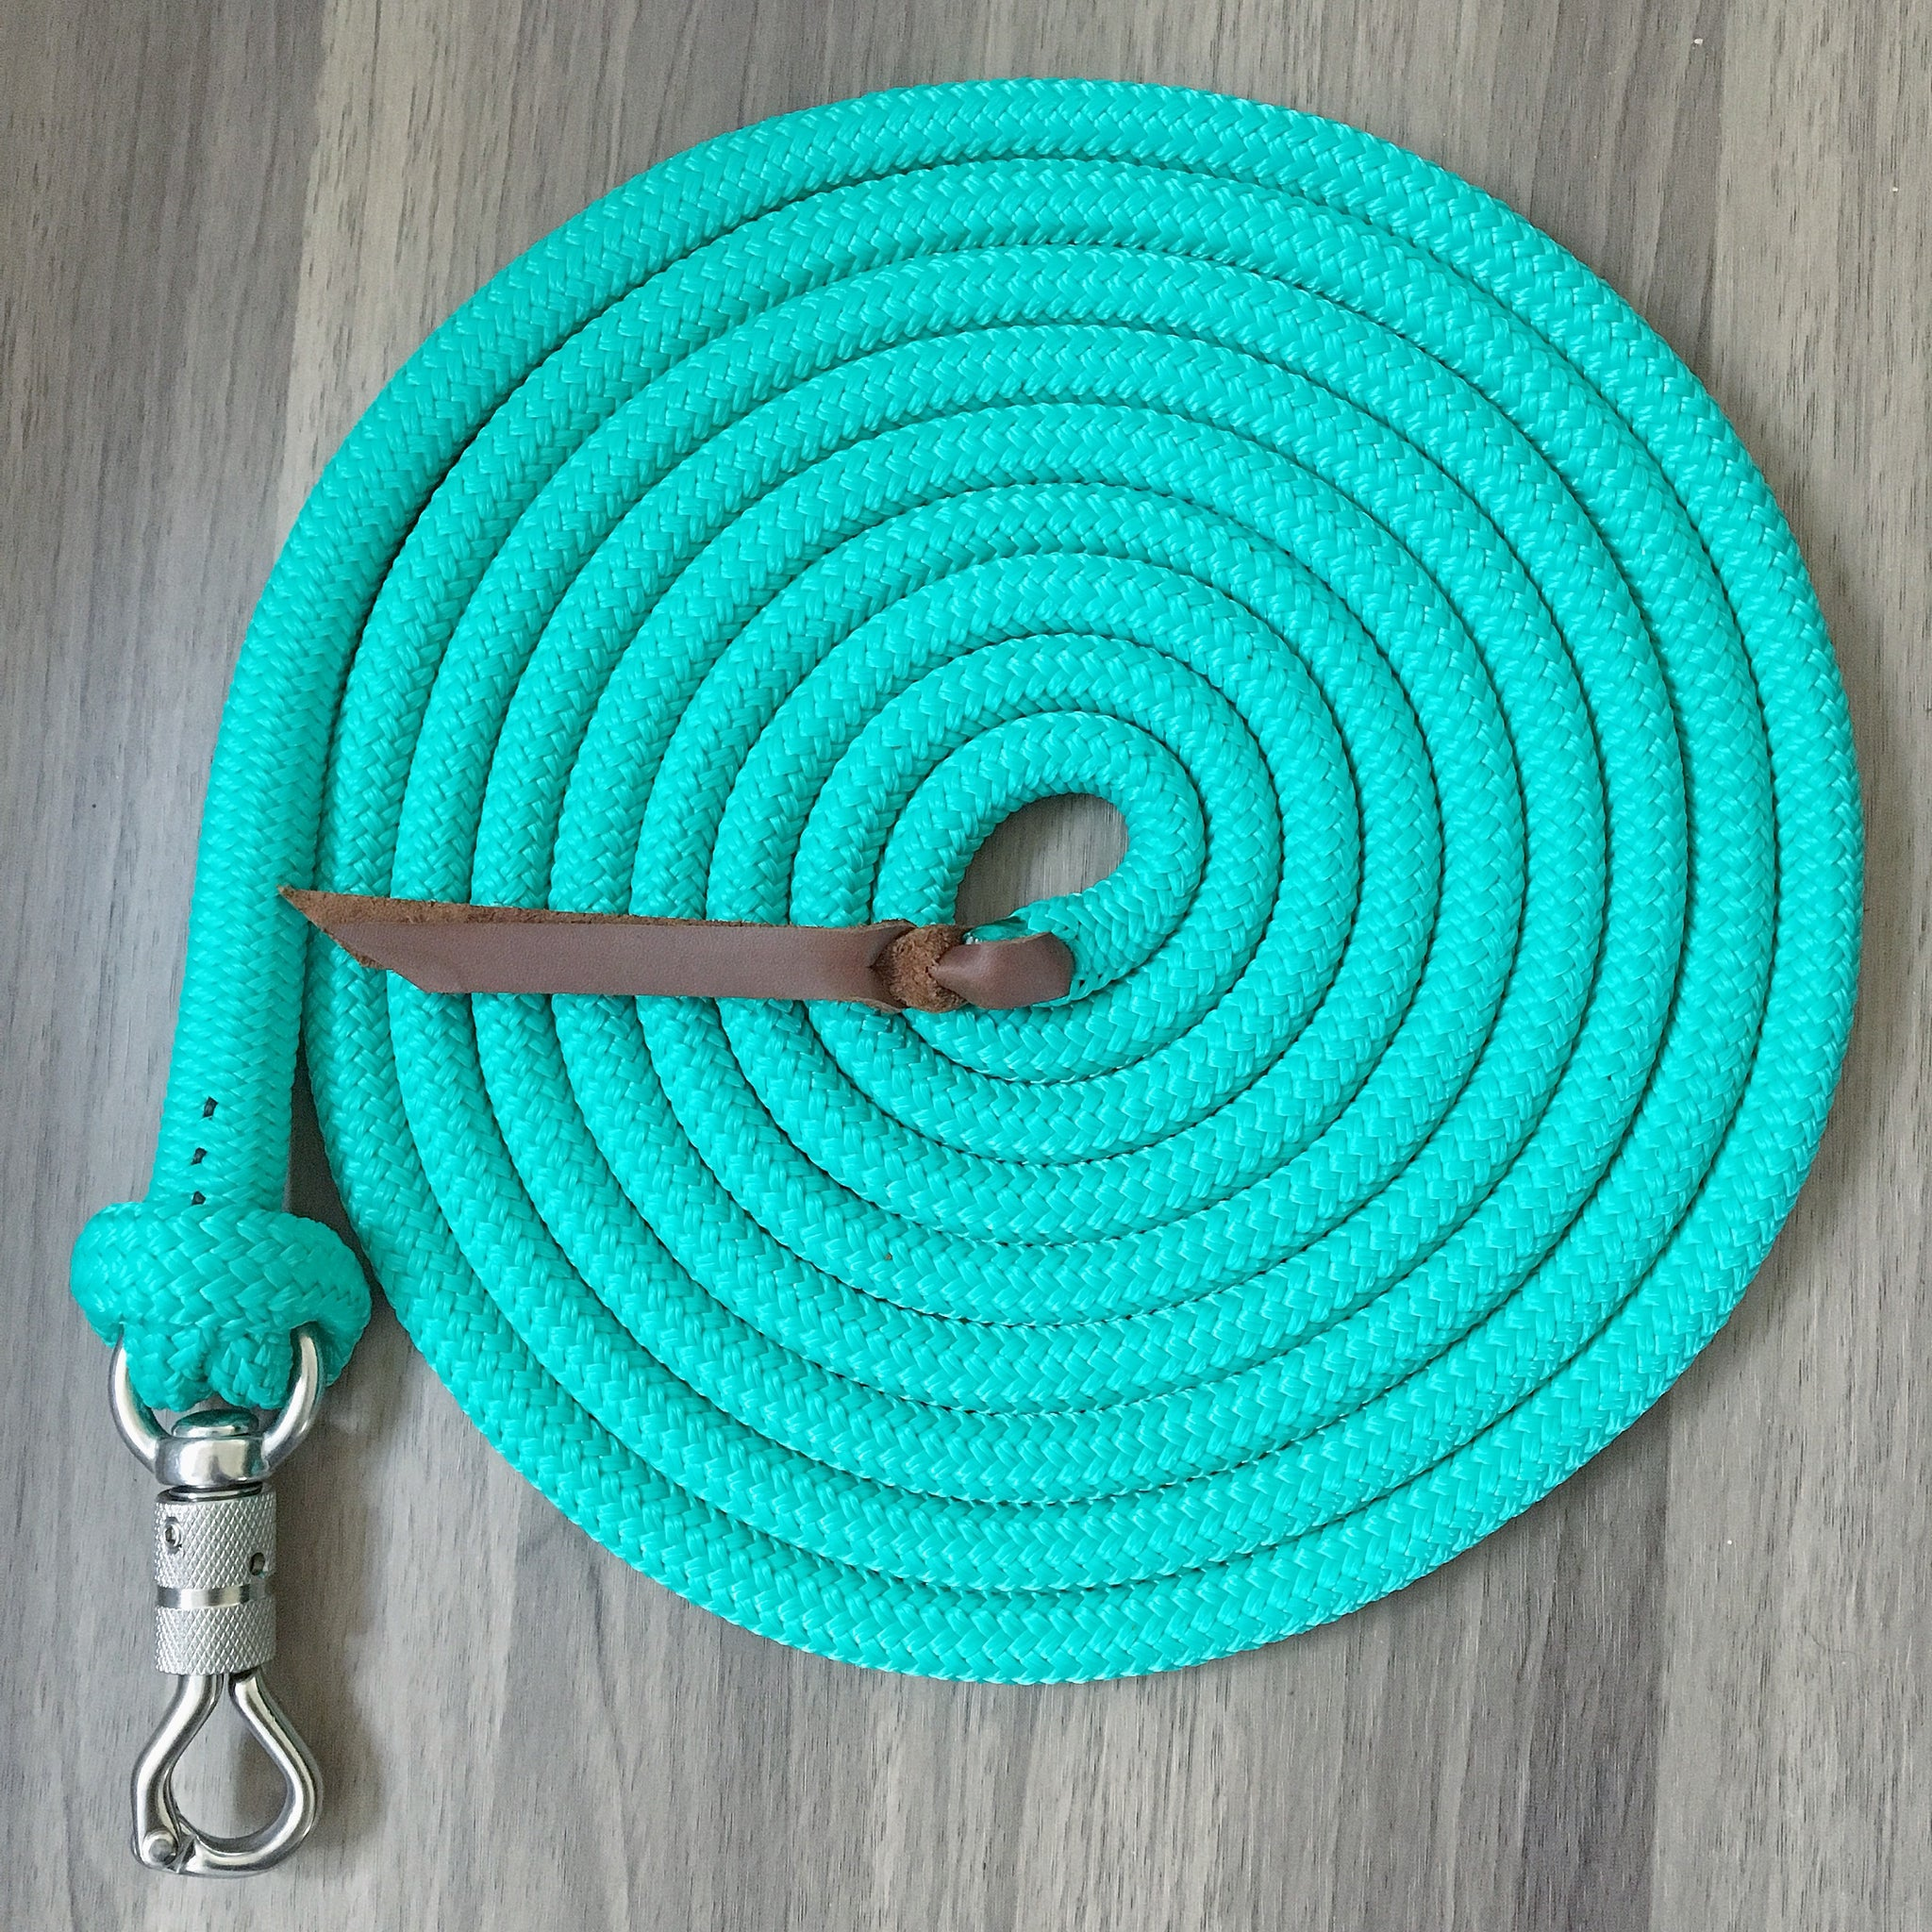 14' or 15' Lead Rope